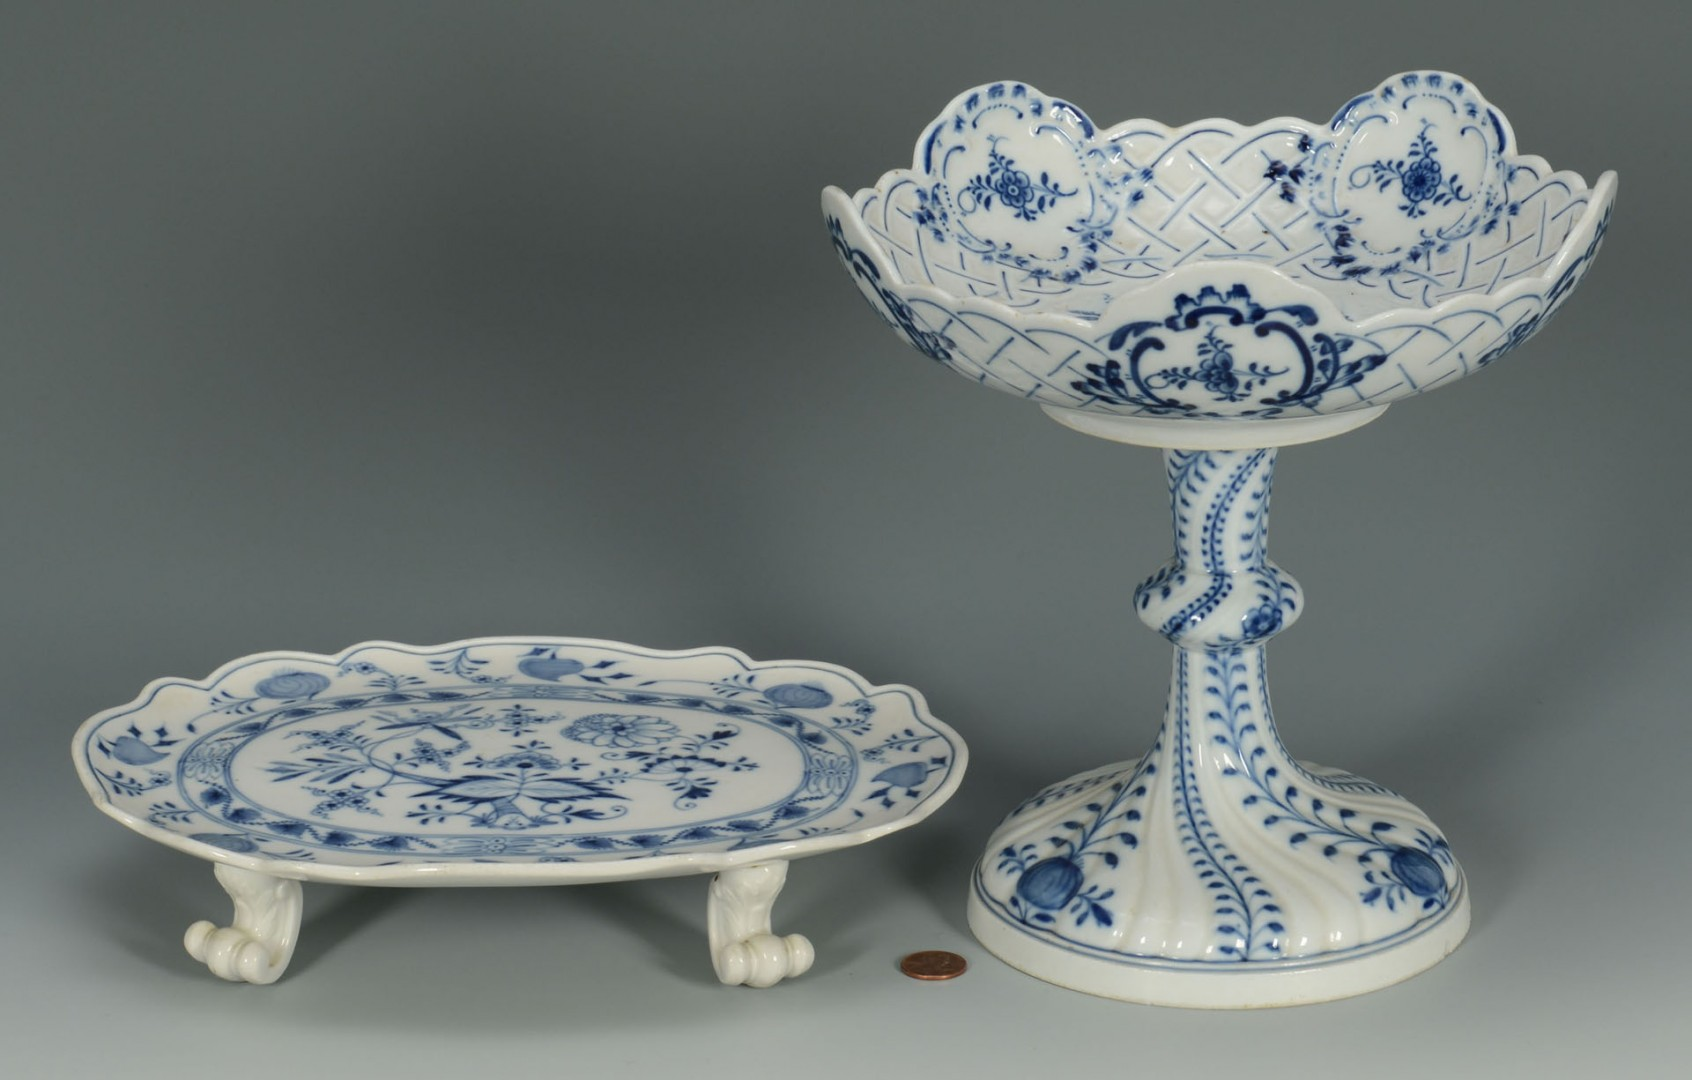 Lot 431: Grouping of Blue Onion Porcelain, 2 Meissen